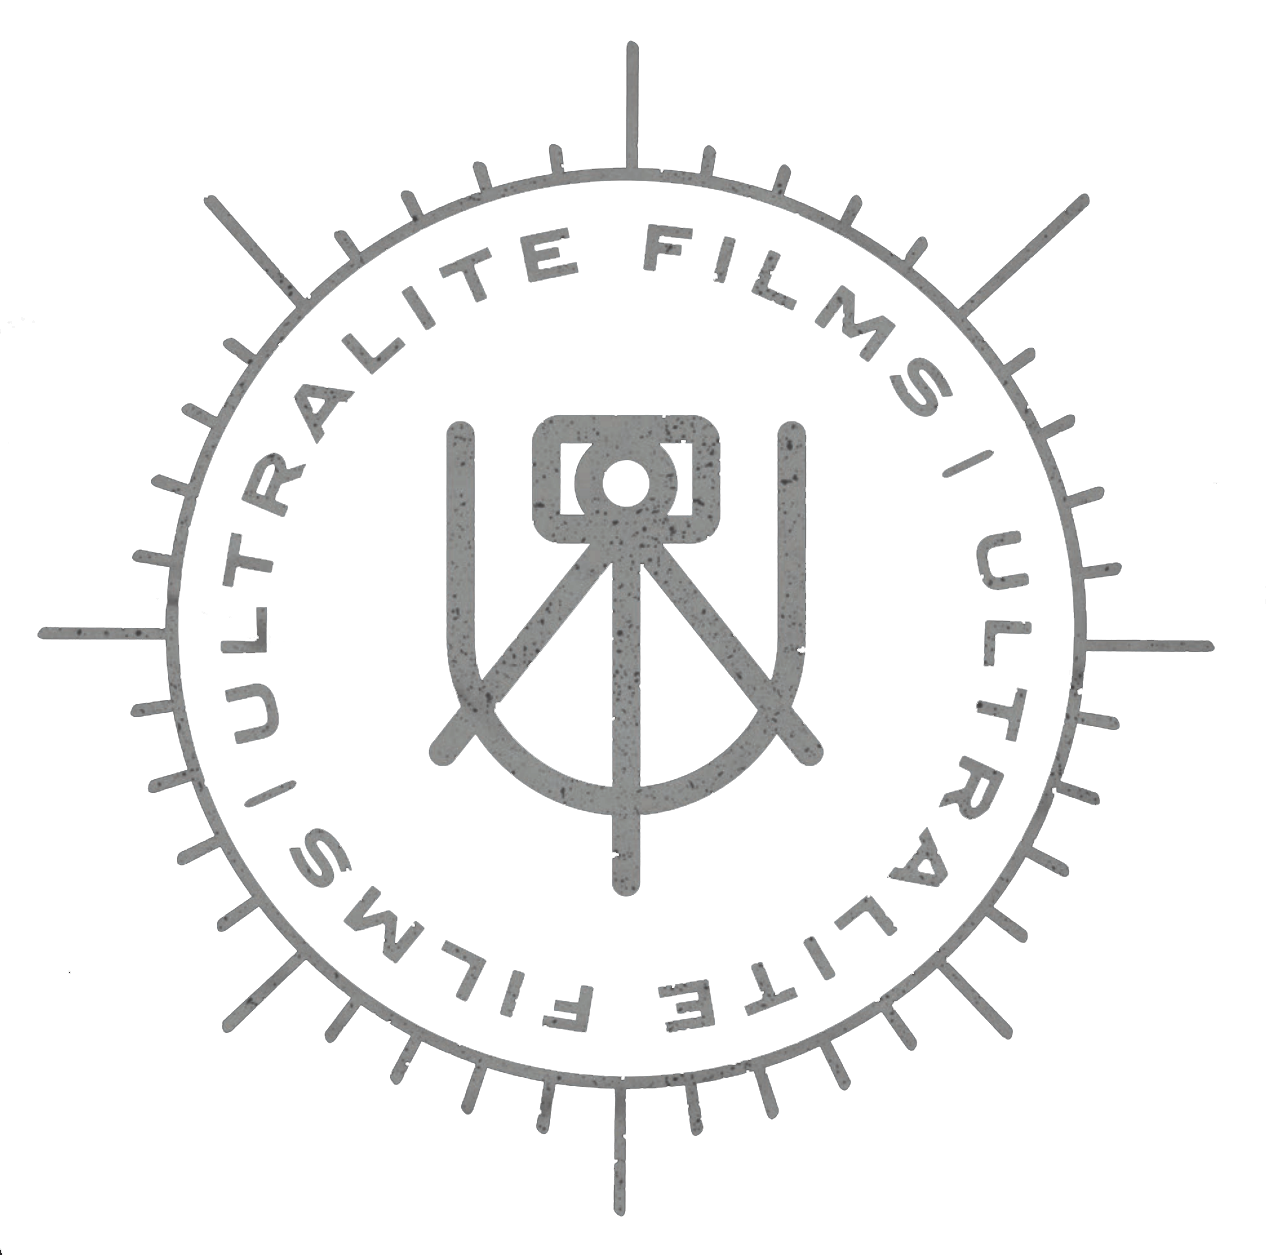 UltraliteFilms_CompassLogo_DocumentaryFilm_ProductionCompany_AustinTexas.png